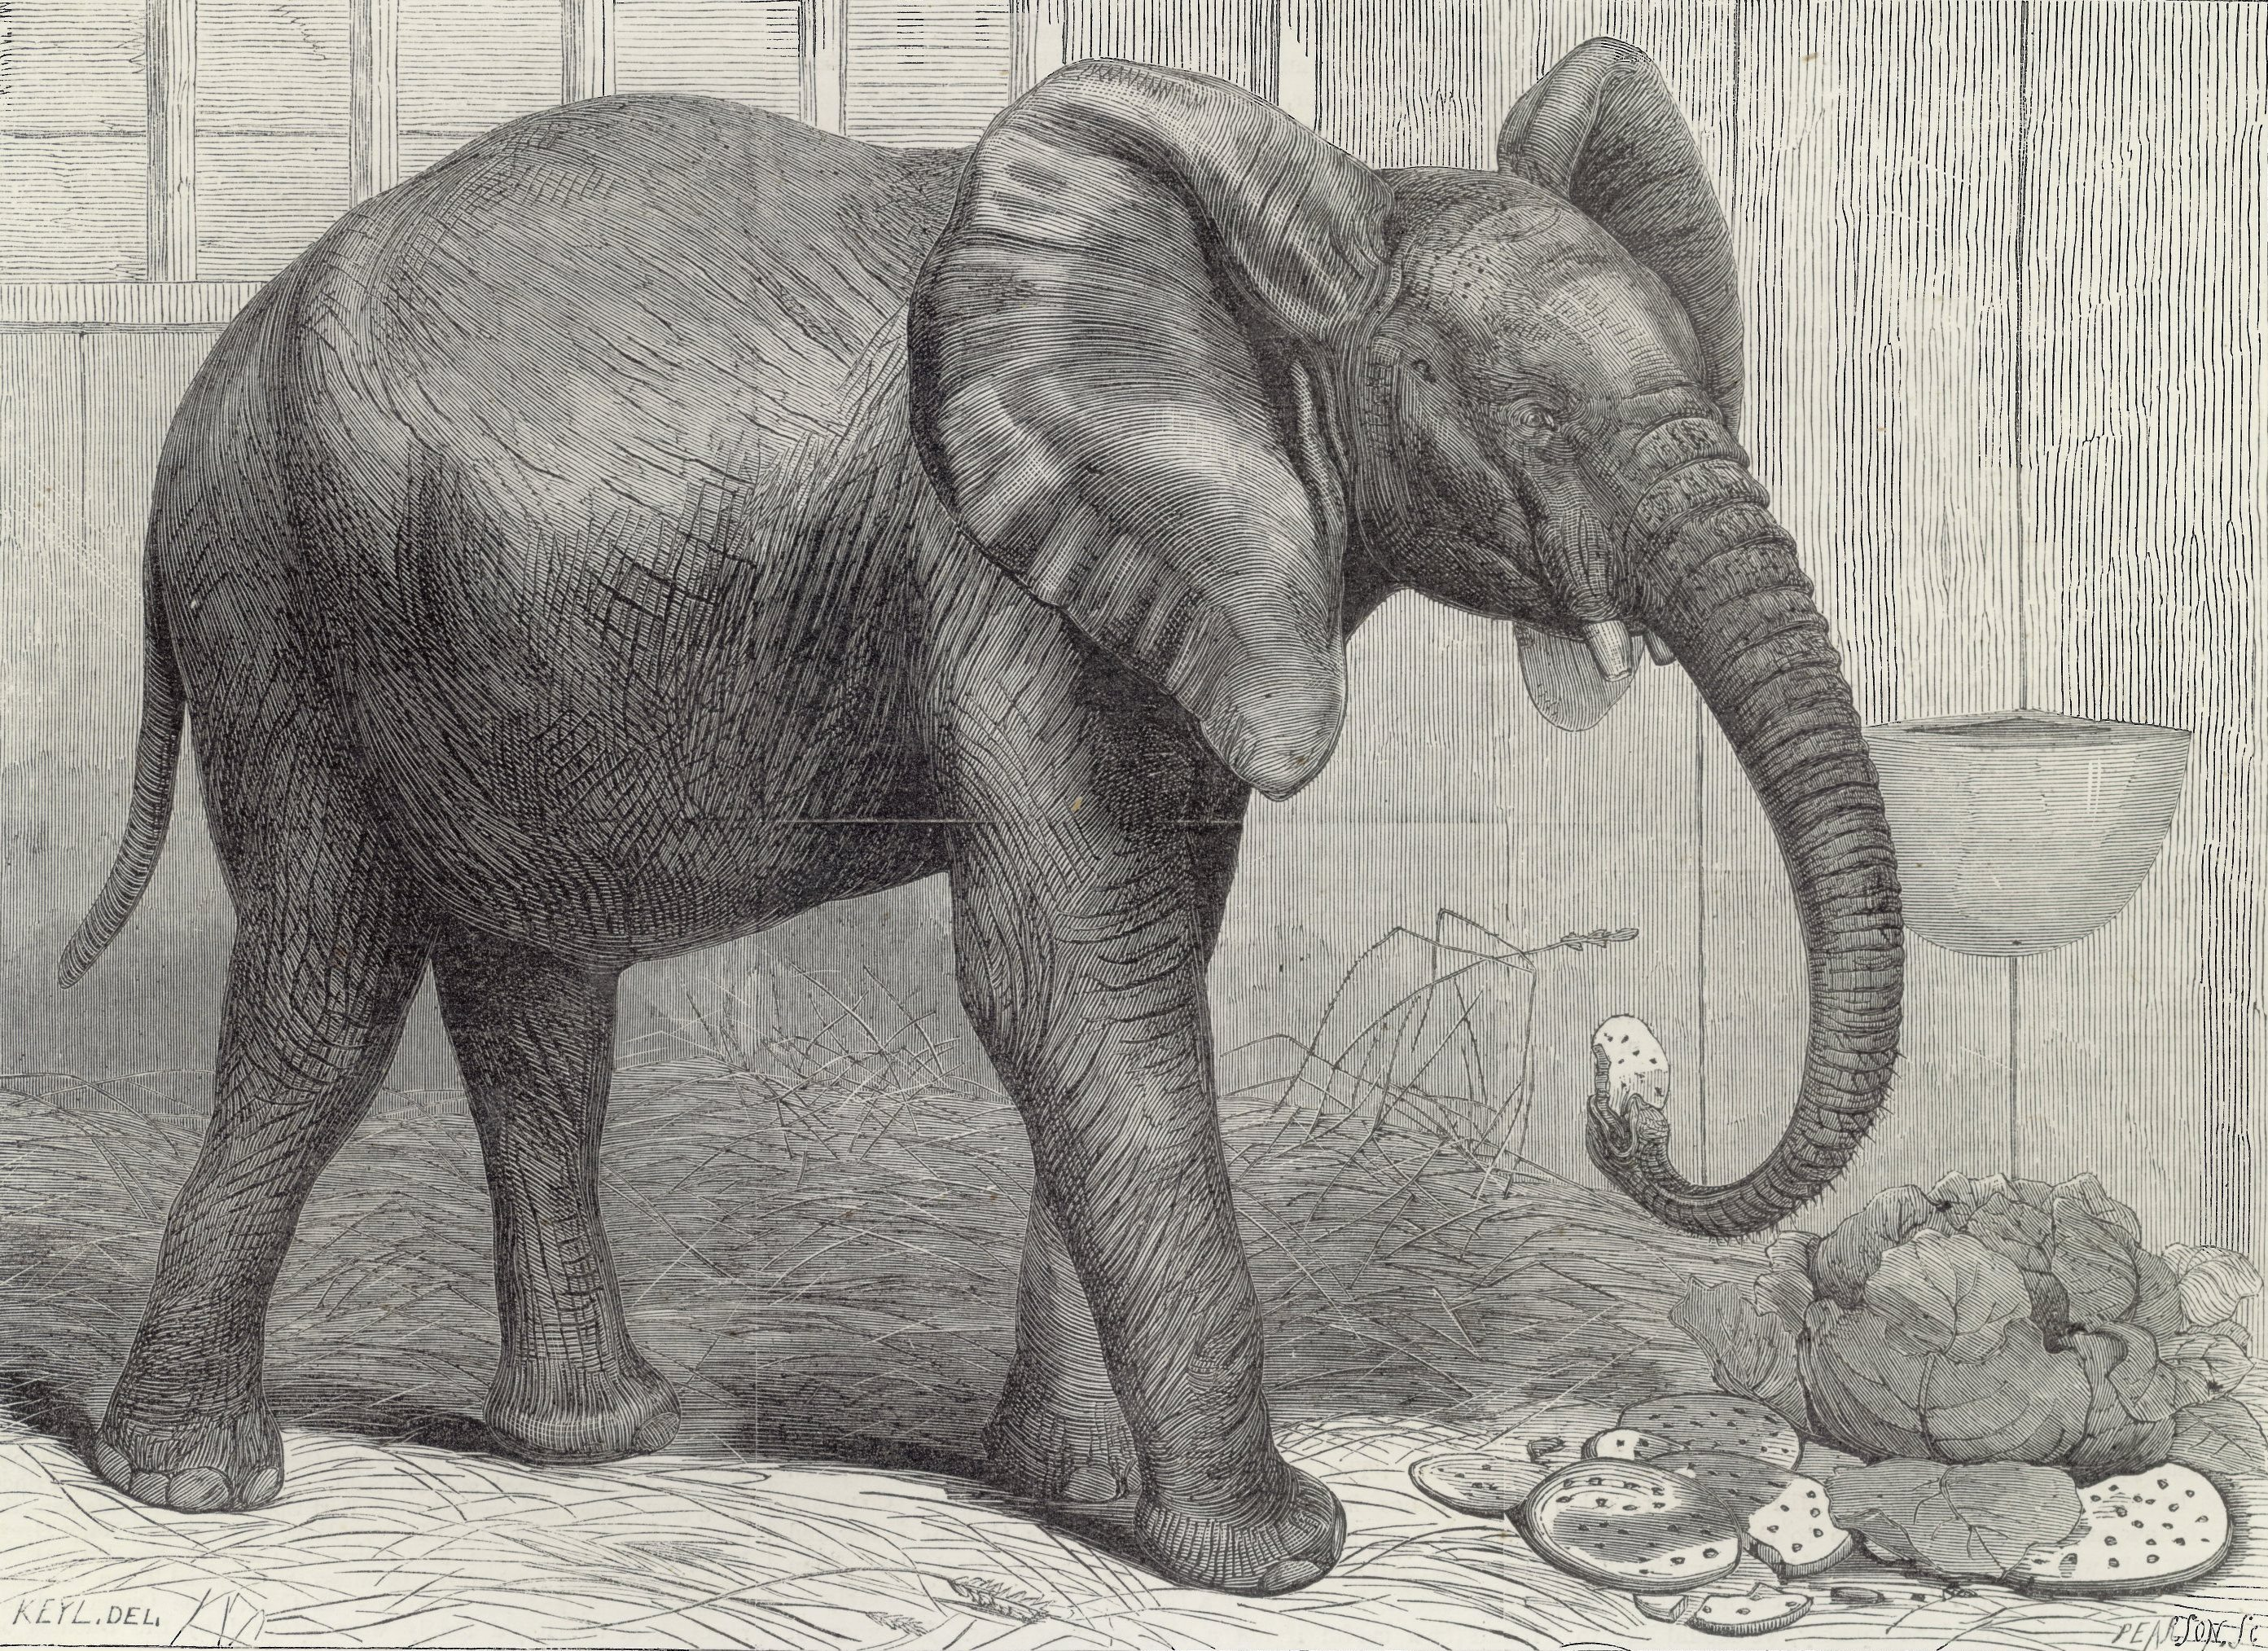 what does the elephant symbolize in shooting an elephant